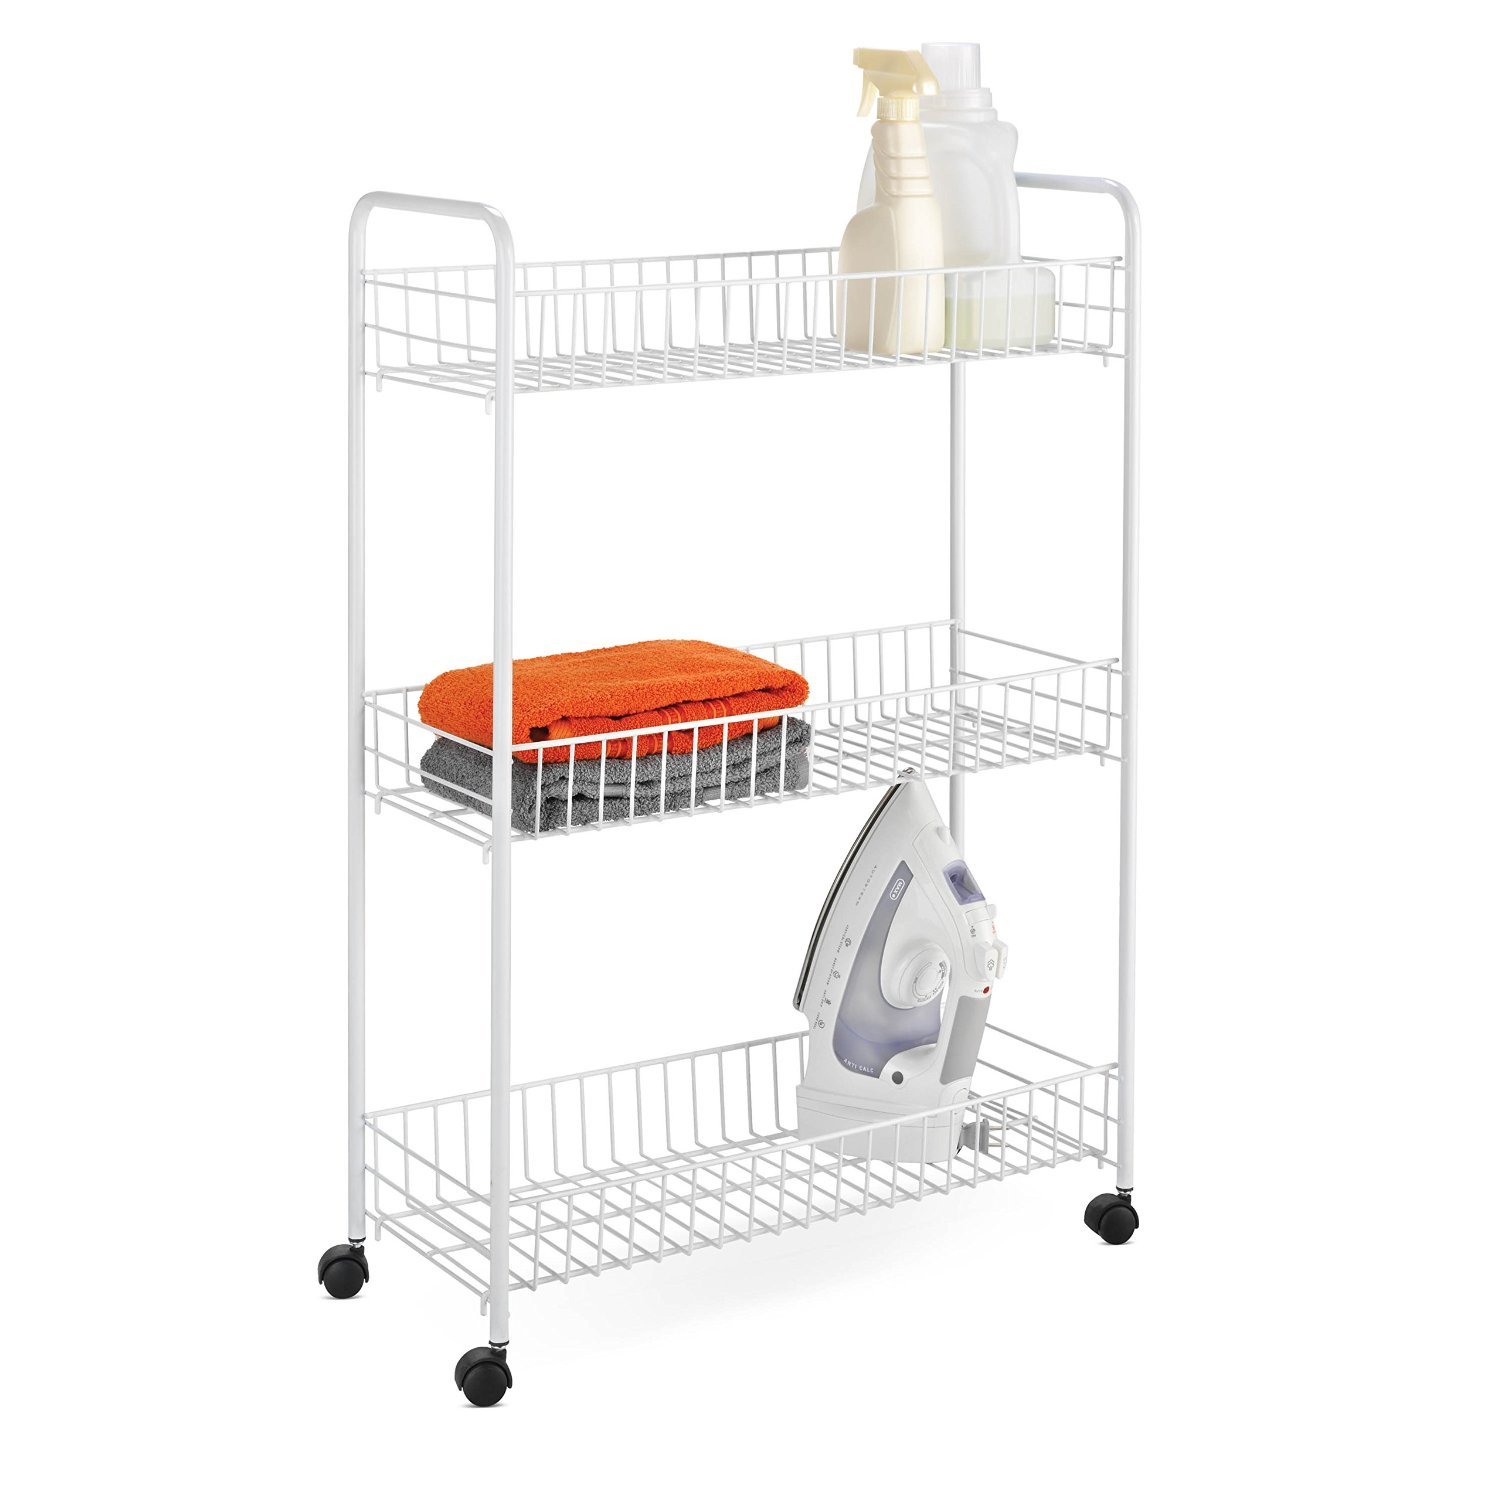 Honey Can Do 3-Tier Laundry Cart Sale $10.99  Free Shipping from Amazon